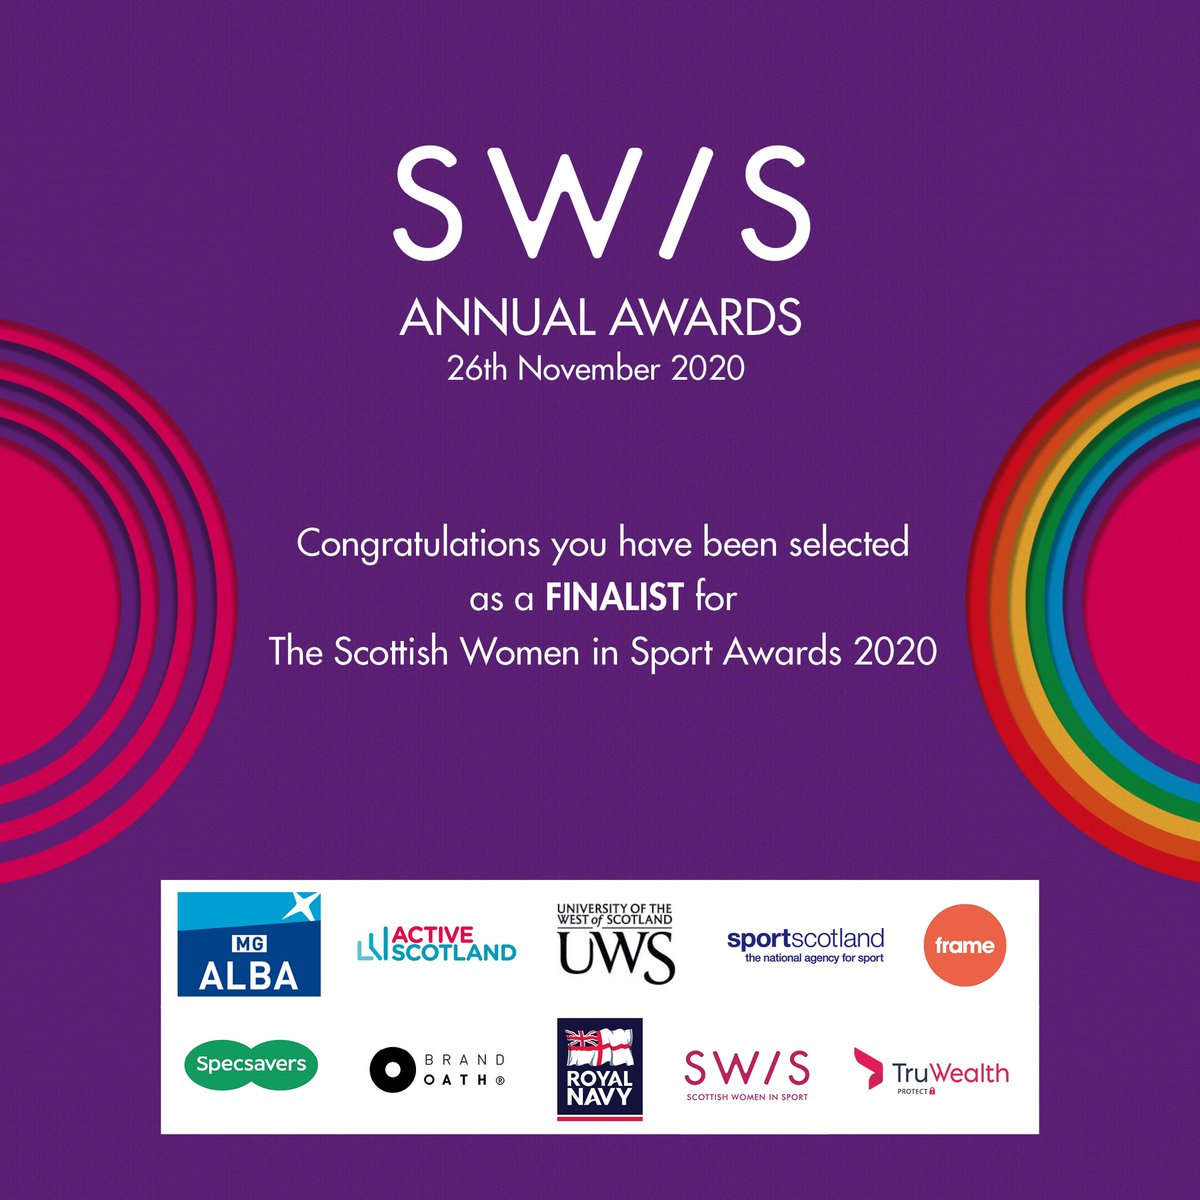 Delighted to have been selected as a finalist for the @ScotWomenSport Awards 2020 🥰 #swisfinalist2020